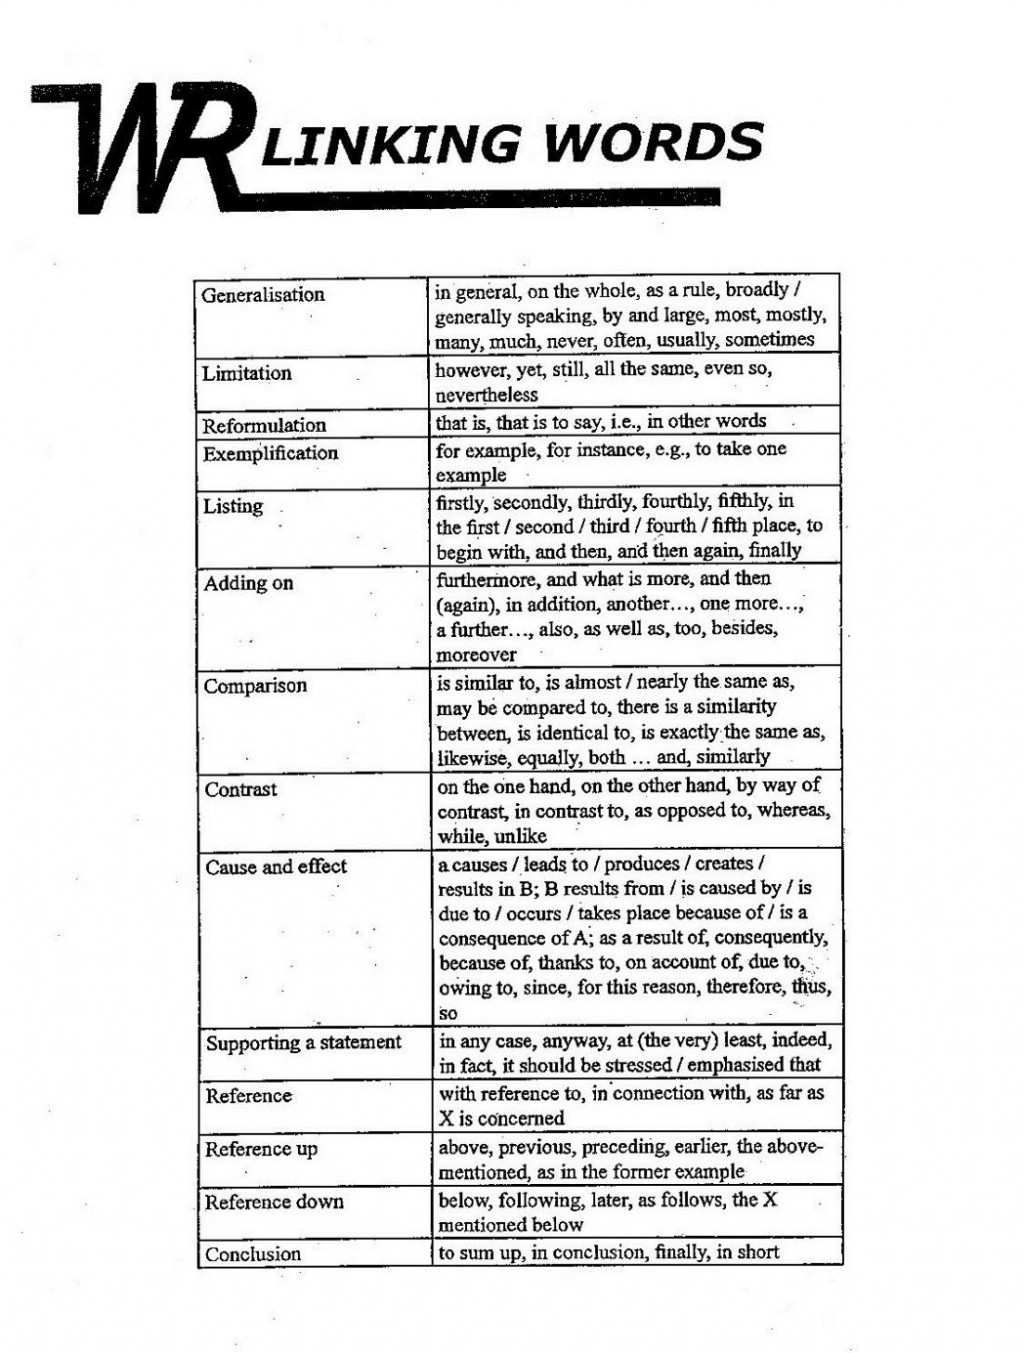 010 Word Essay Introduction Words For Essays How To Write Formal Linking 1048x1385 Excellent 750 On Respect Double Spaced About Yourself Large